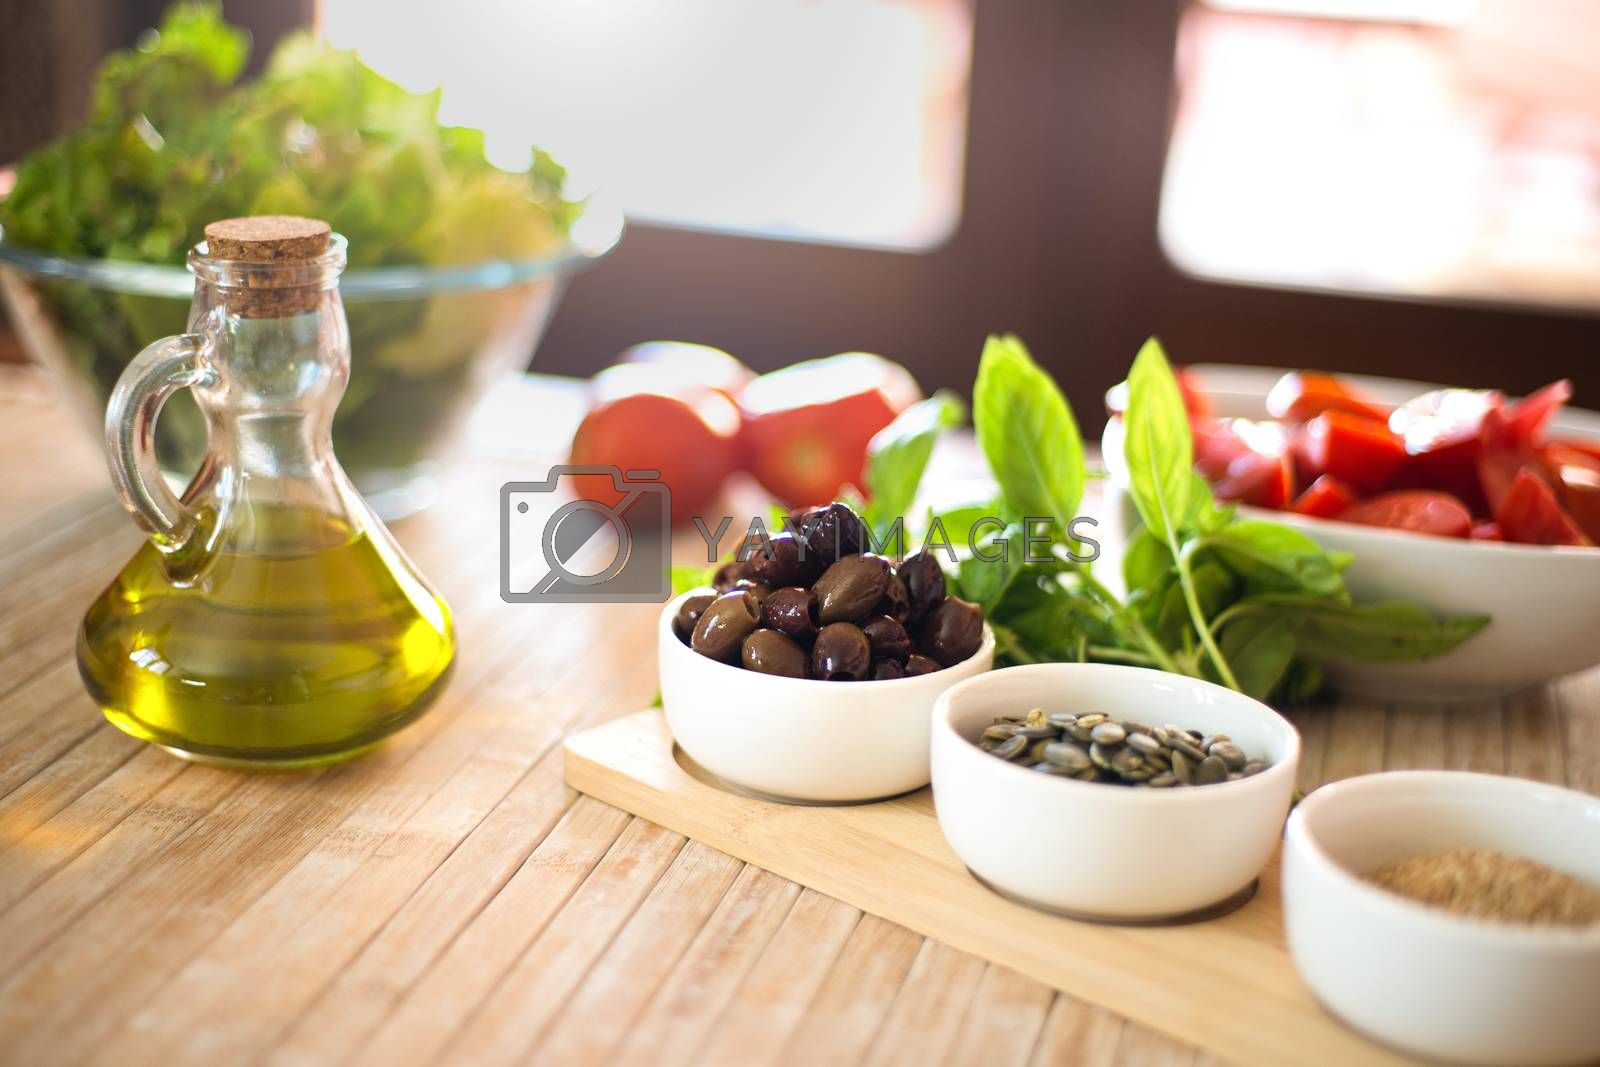 Extra virgin olive oil and olives in the foreground with fresh vegetables and sunlight in the background - Mediterranean diet concept - Healthy summer food concept